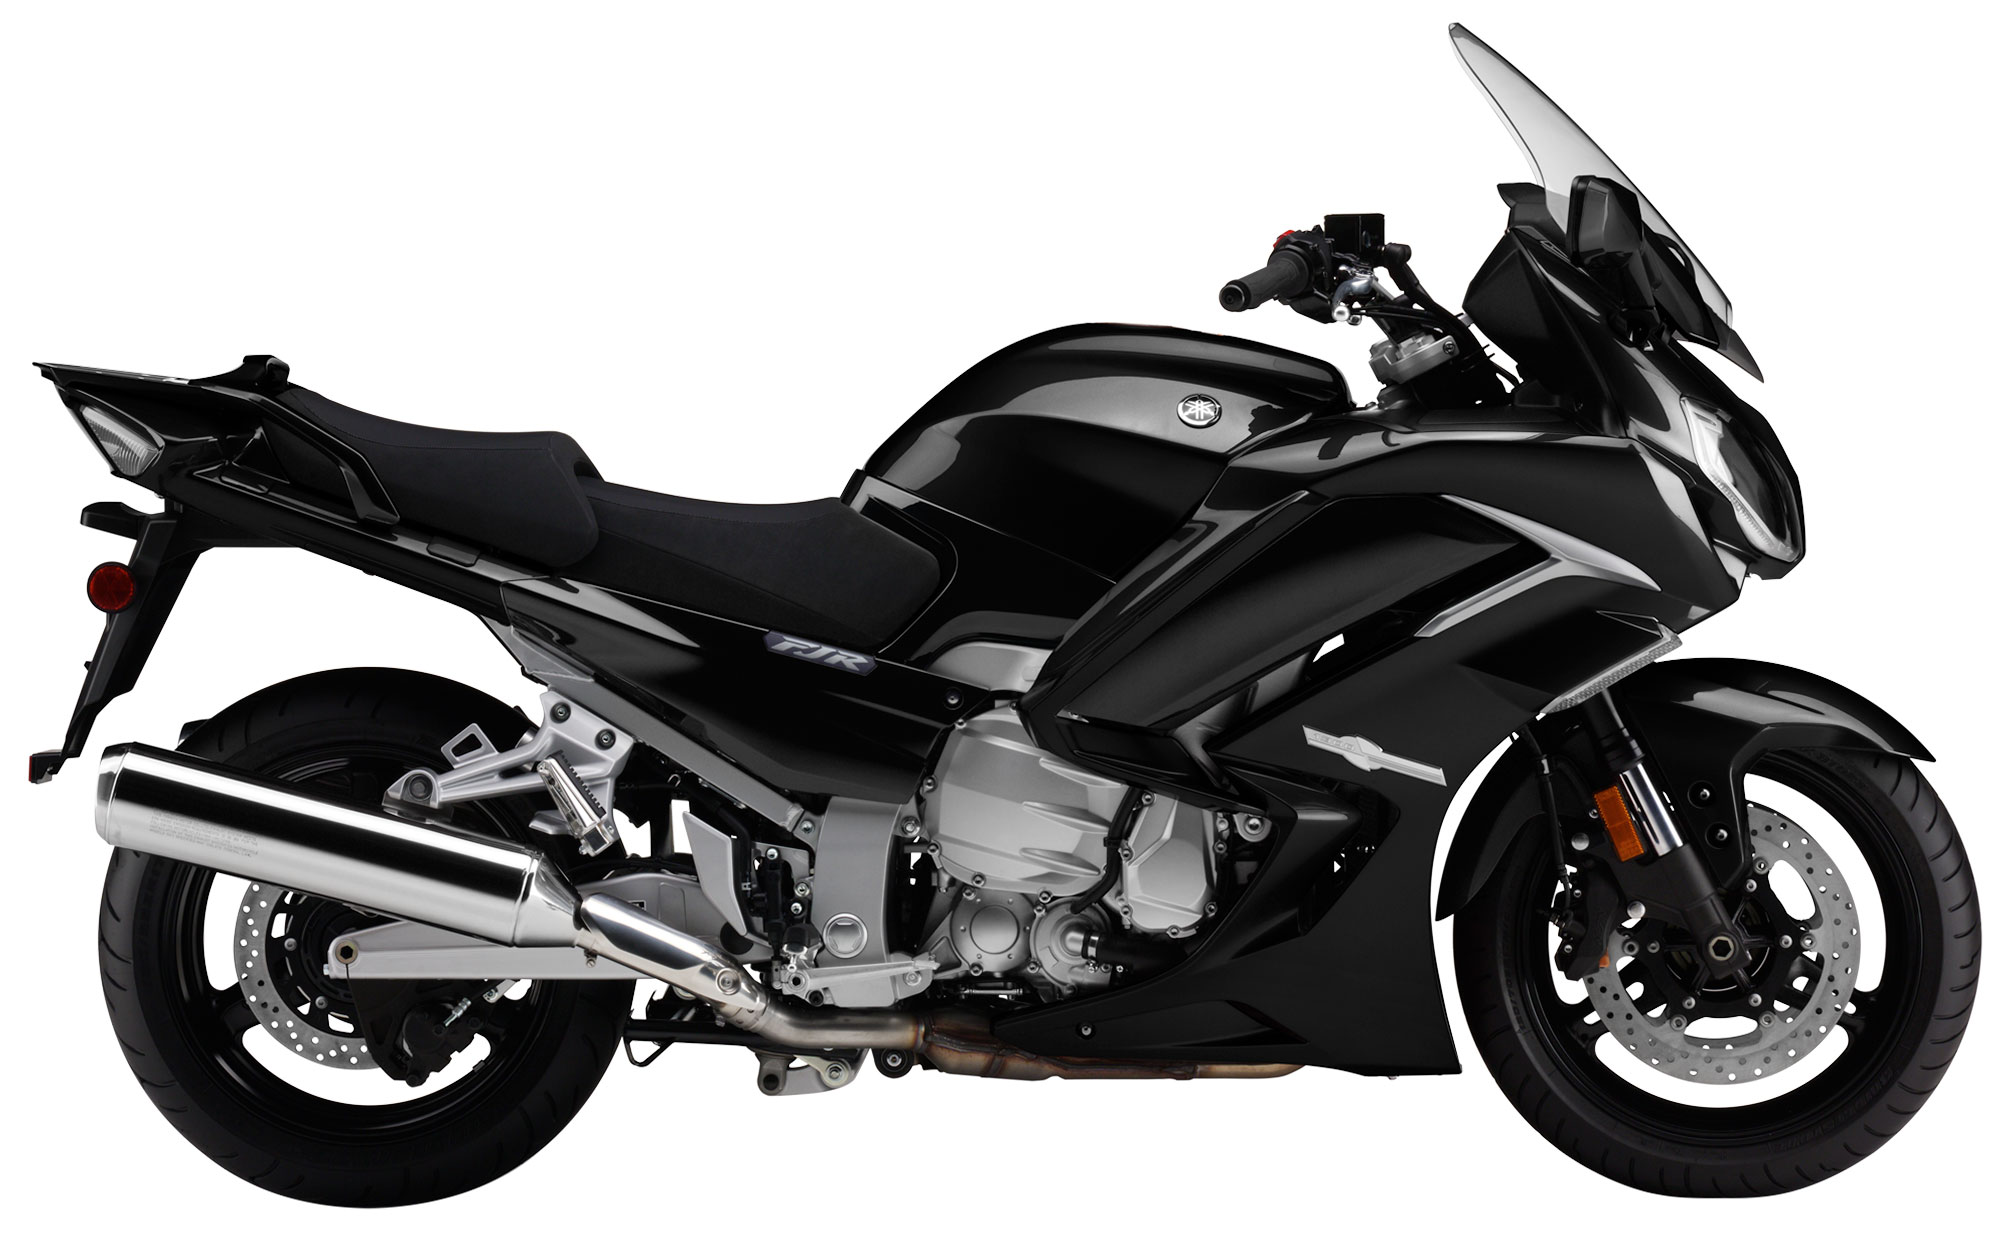 2014 yamaha fjr1300e review for Yamaha motorcycles thailand prices